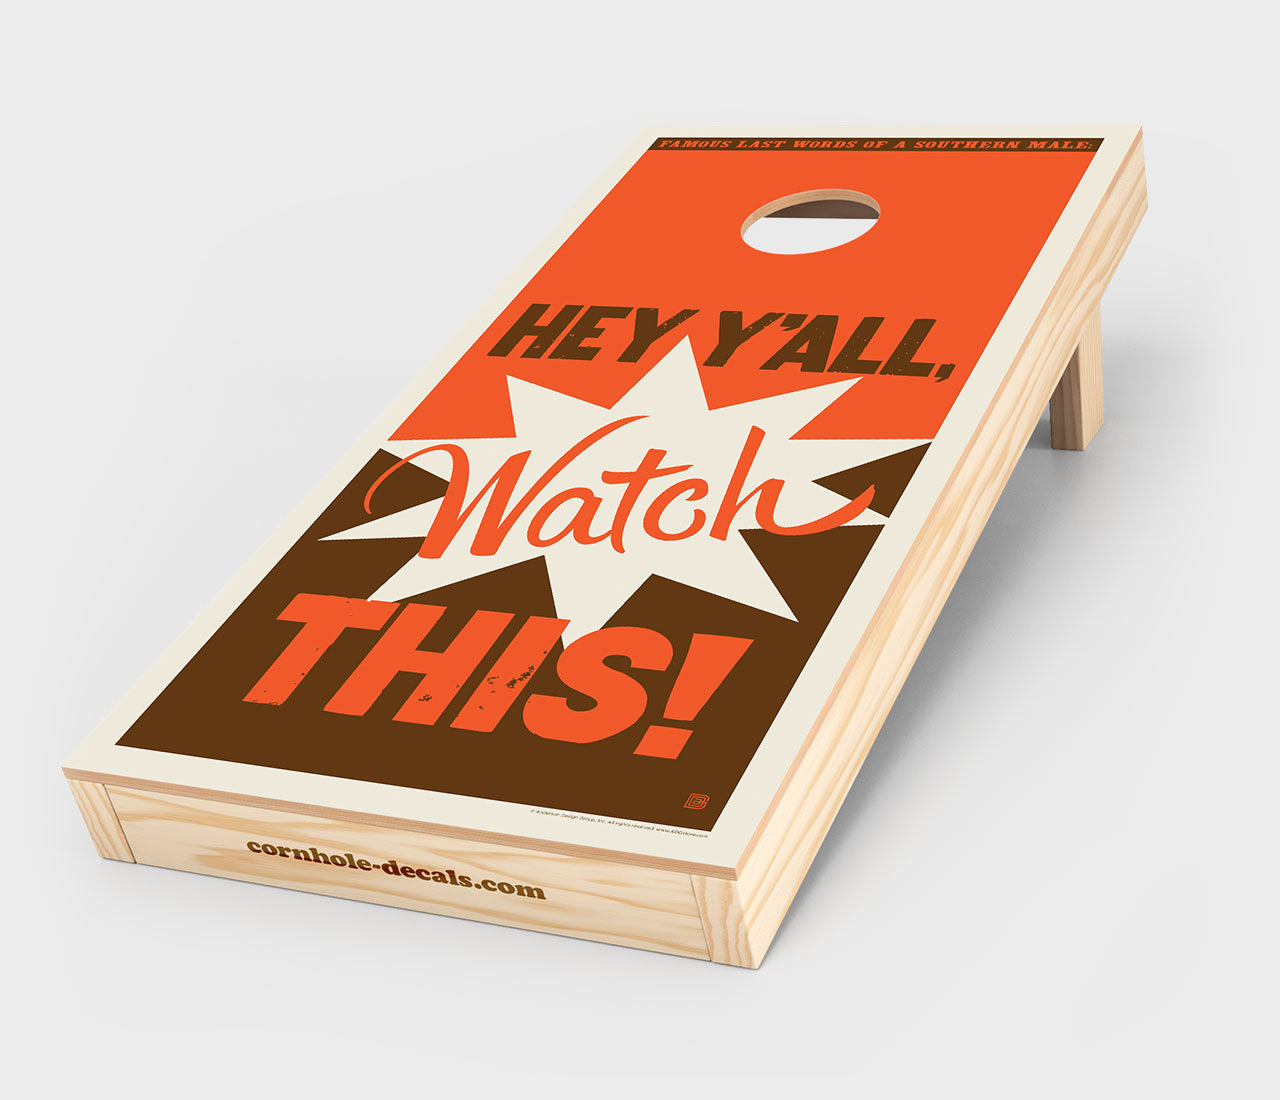 Hey Y'all, Watch This! Cornhole Decal